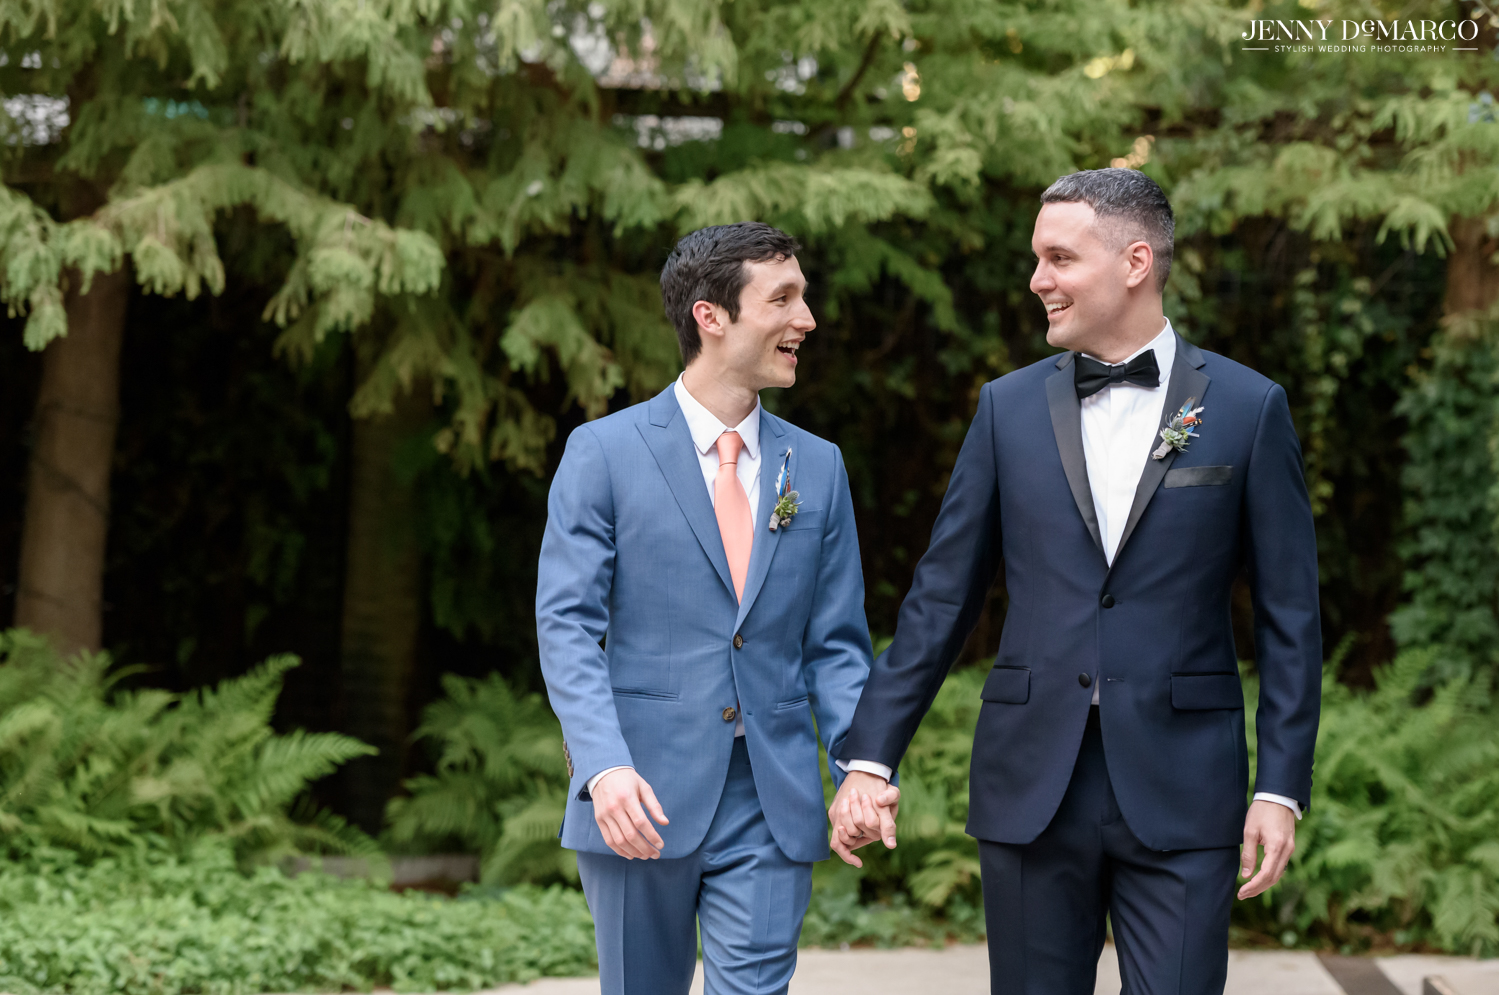 Grooms holding hands and laughing at each other while walking